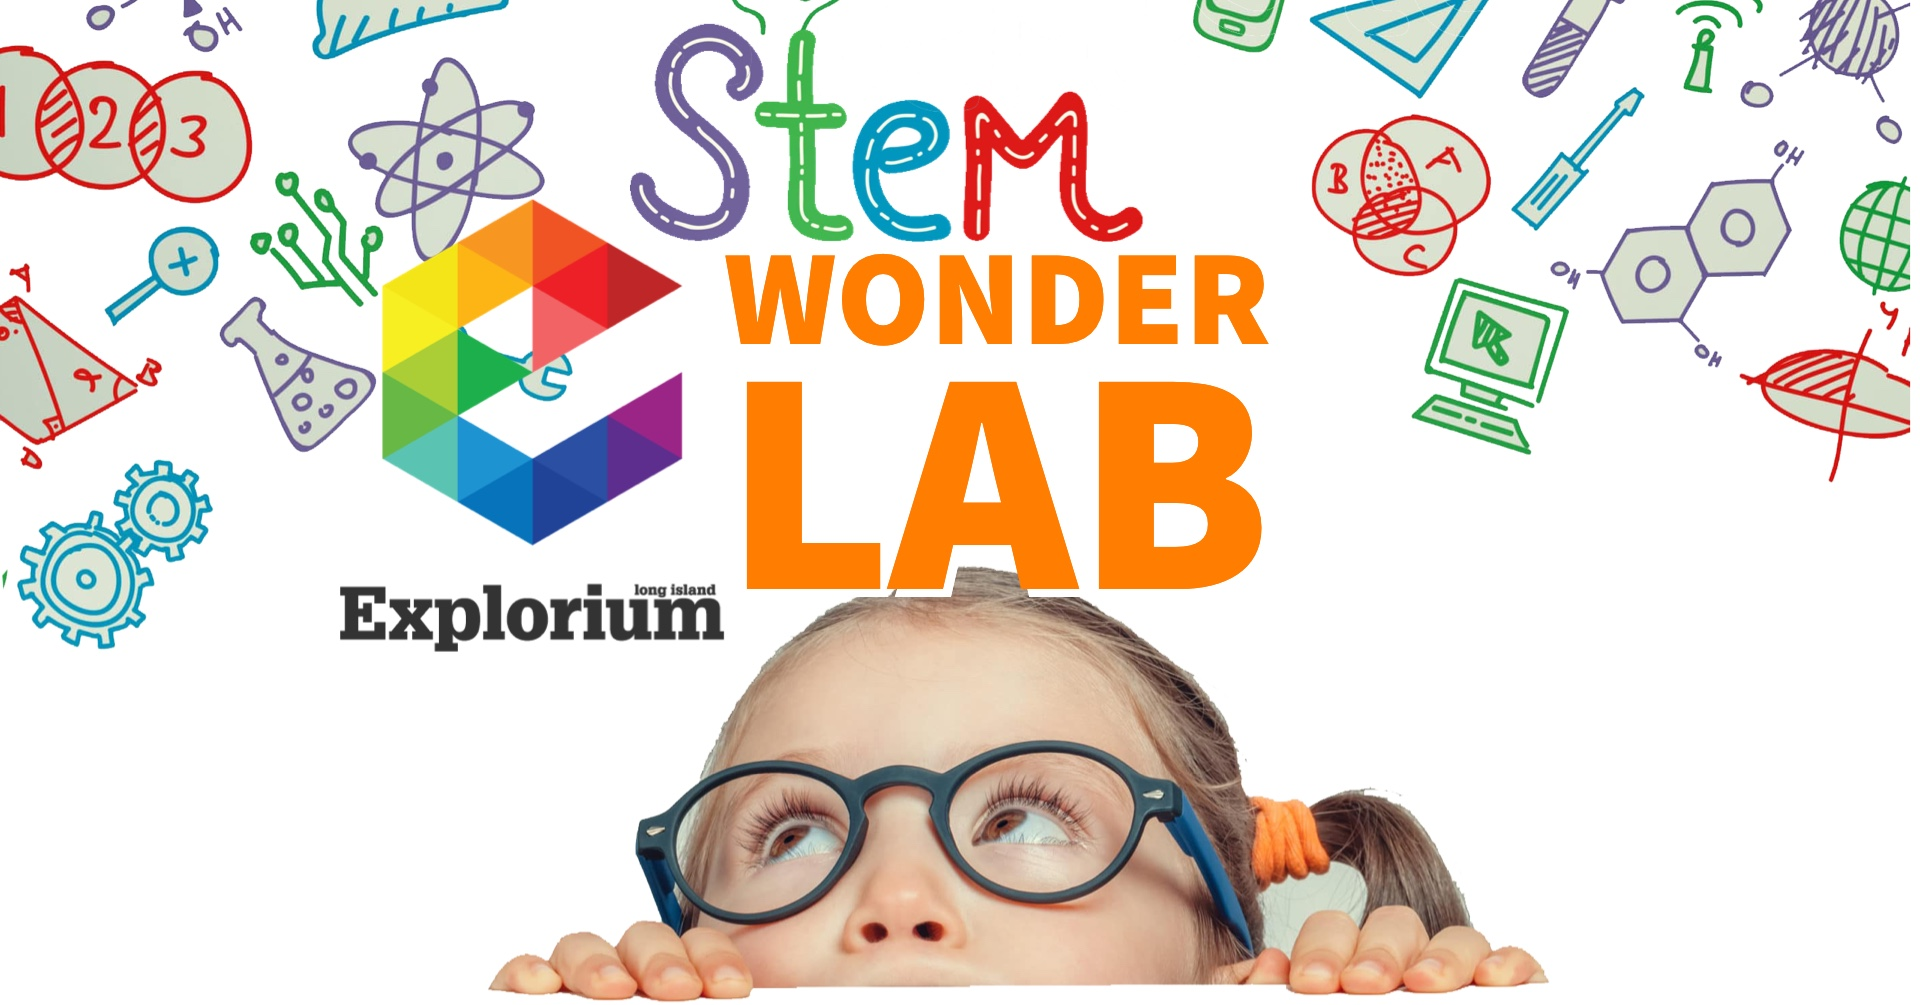 Stem wonder box Facebook event